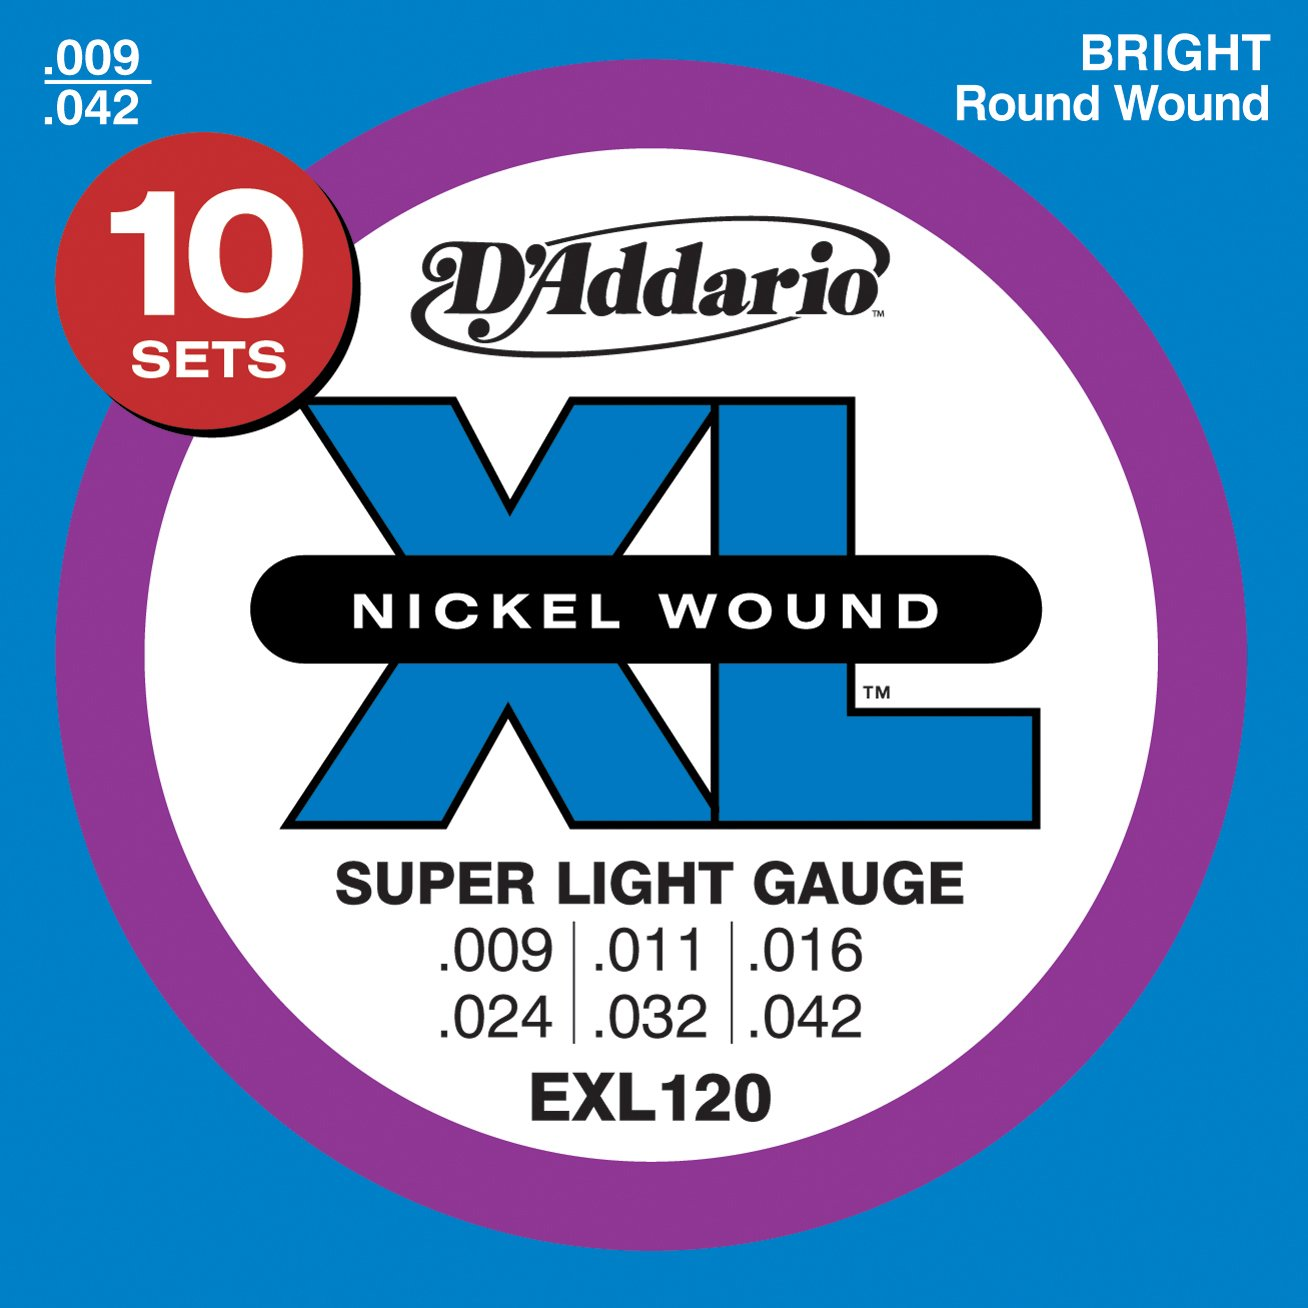 D'Addario EXL120-10P Nickel Wound Electric Guitar Strings, Super Light, 9-42, 10 Sets $16.99